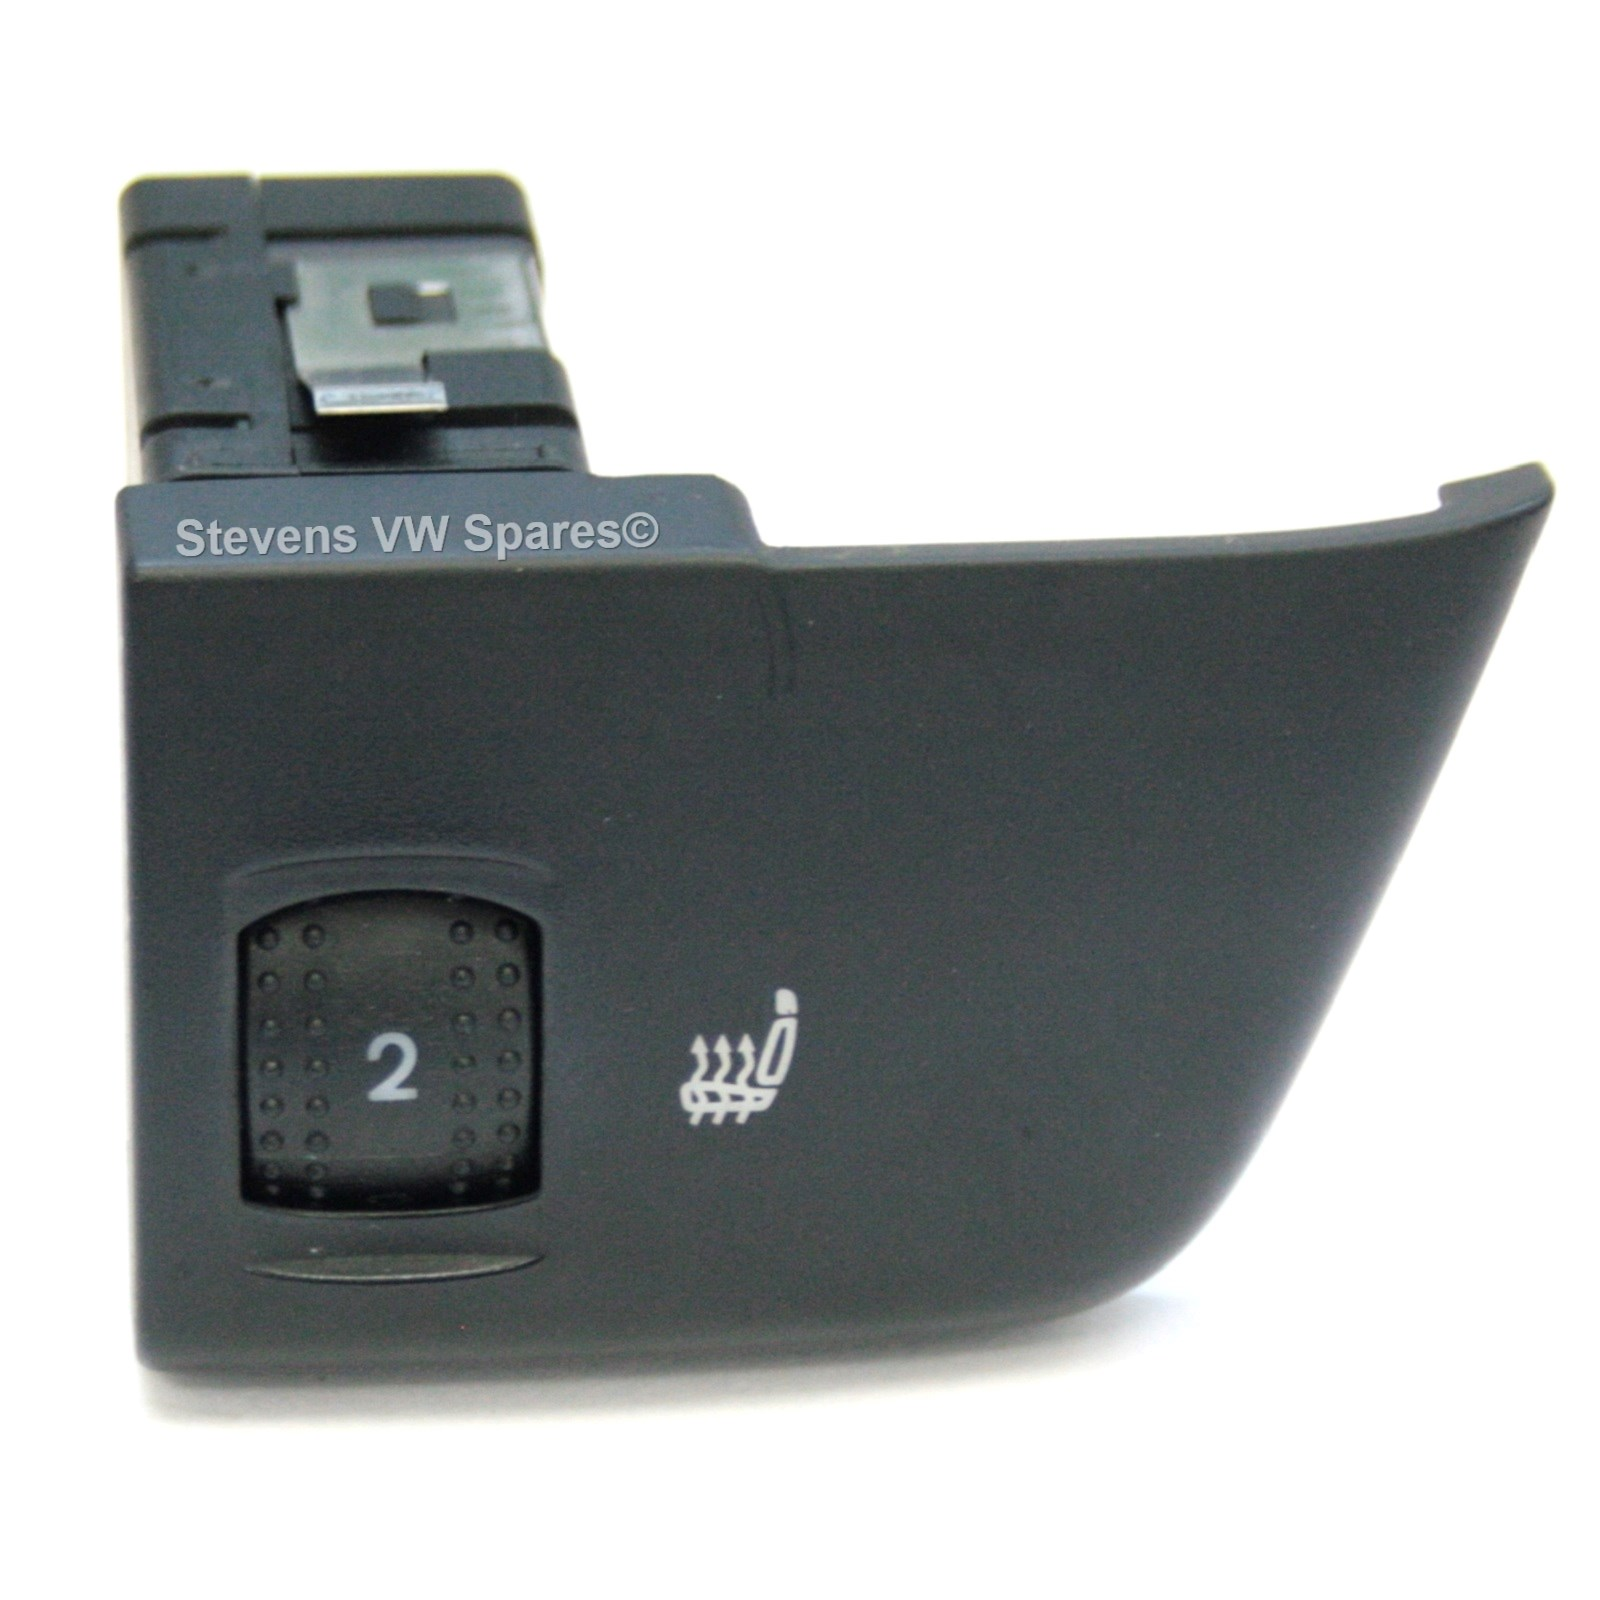 Vw Beetle Body Parts Uk: Used Genuine VW New Beetle Driver Side Heated Seat Switch